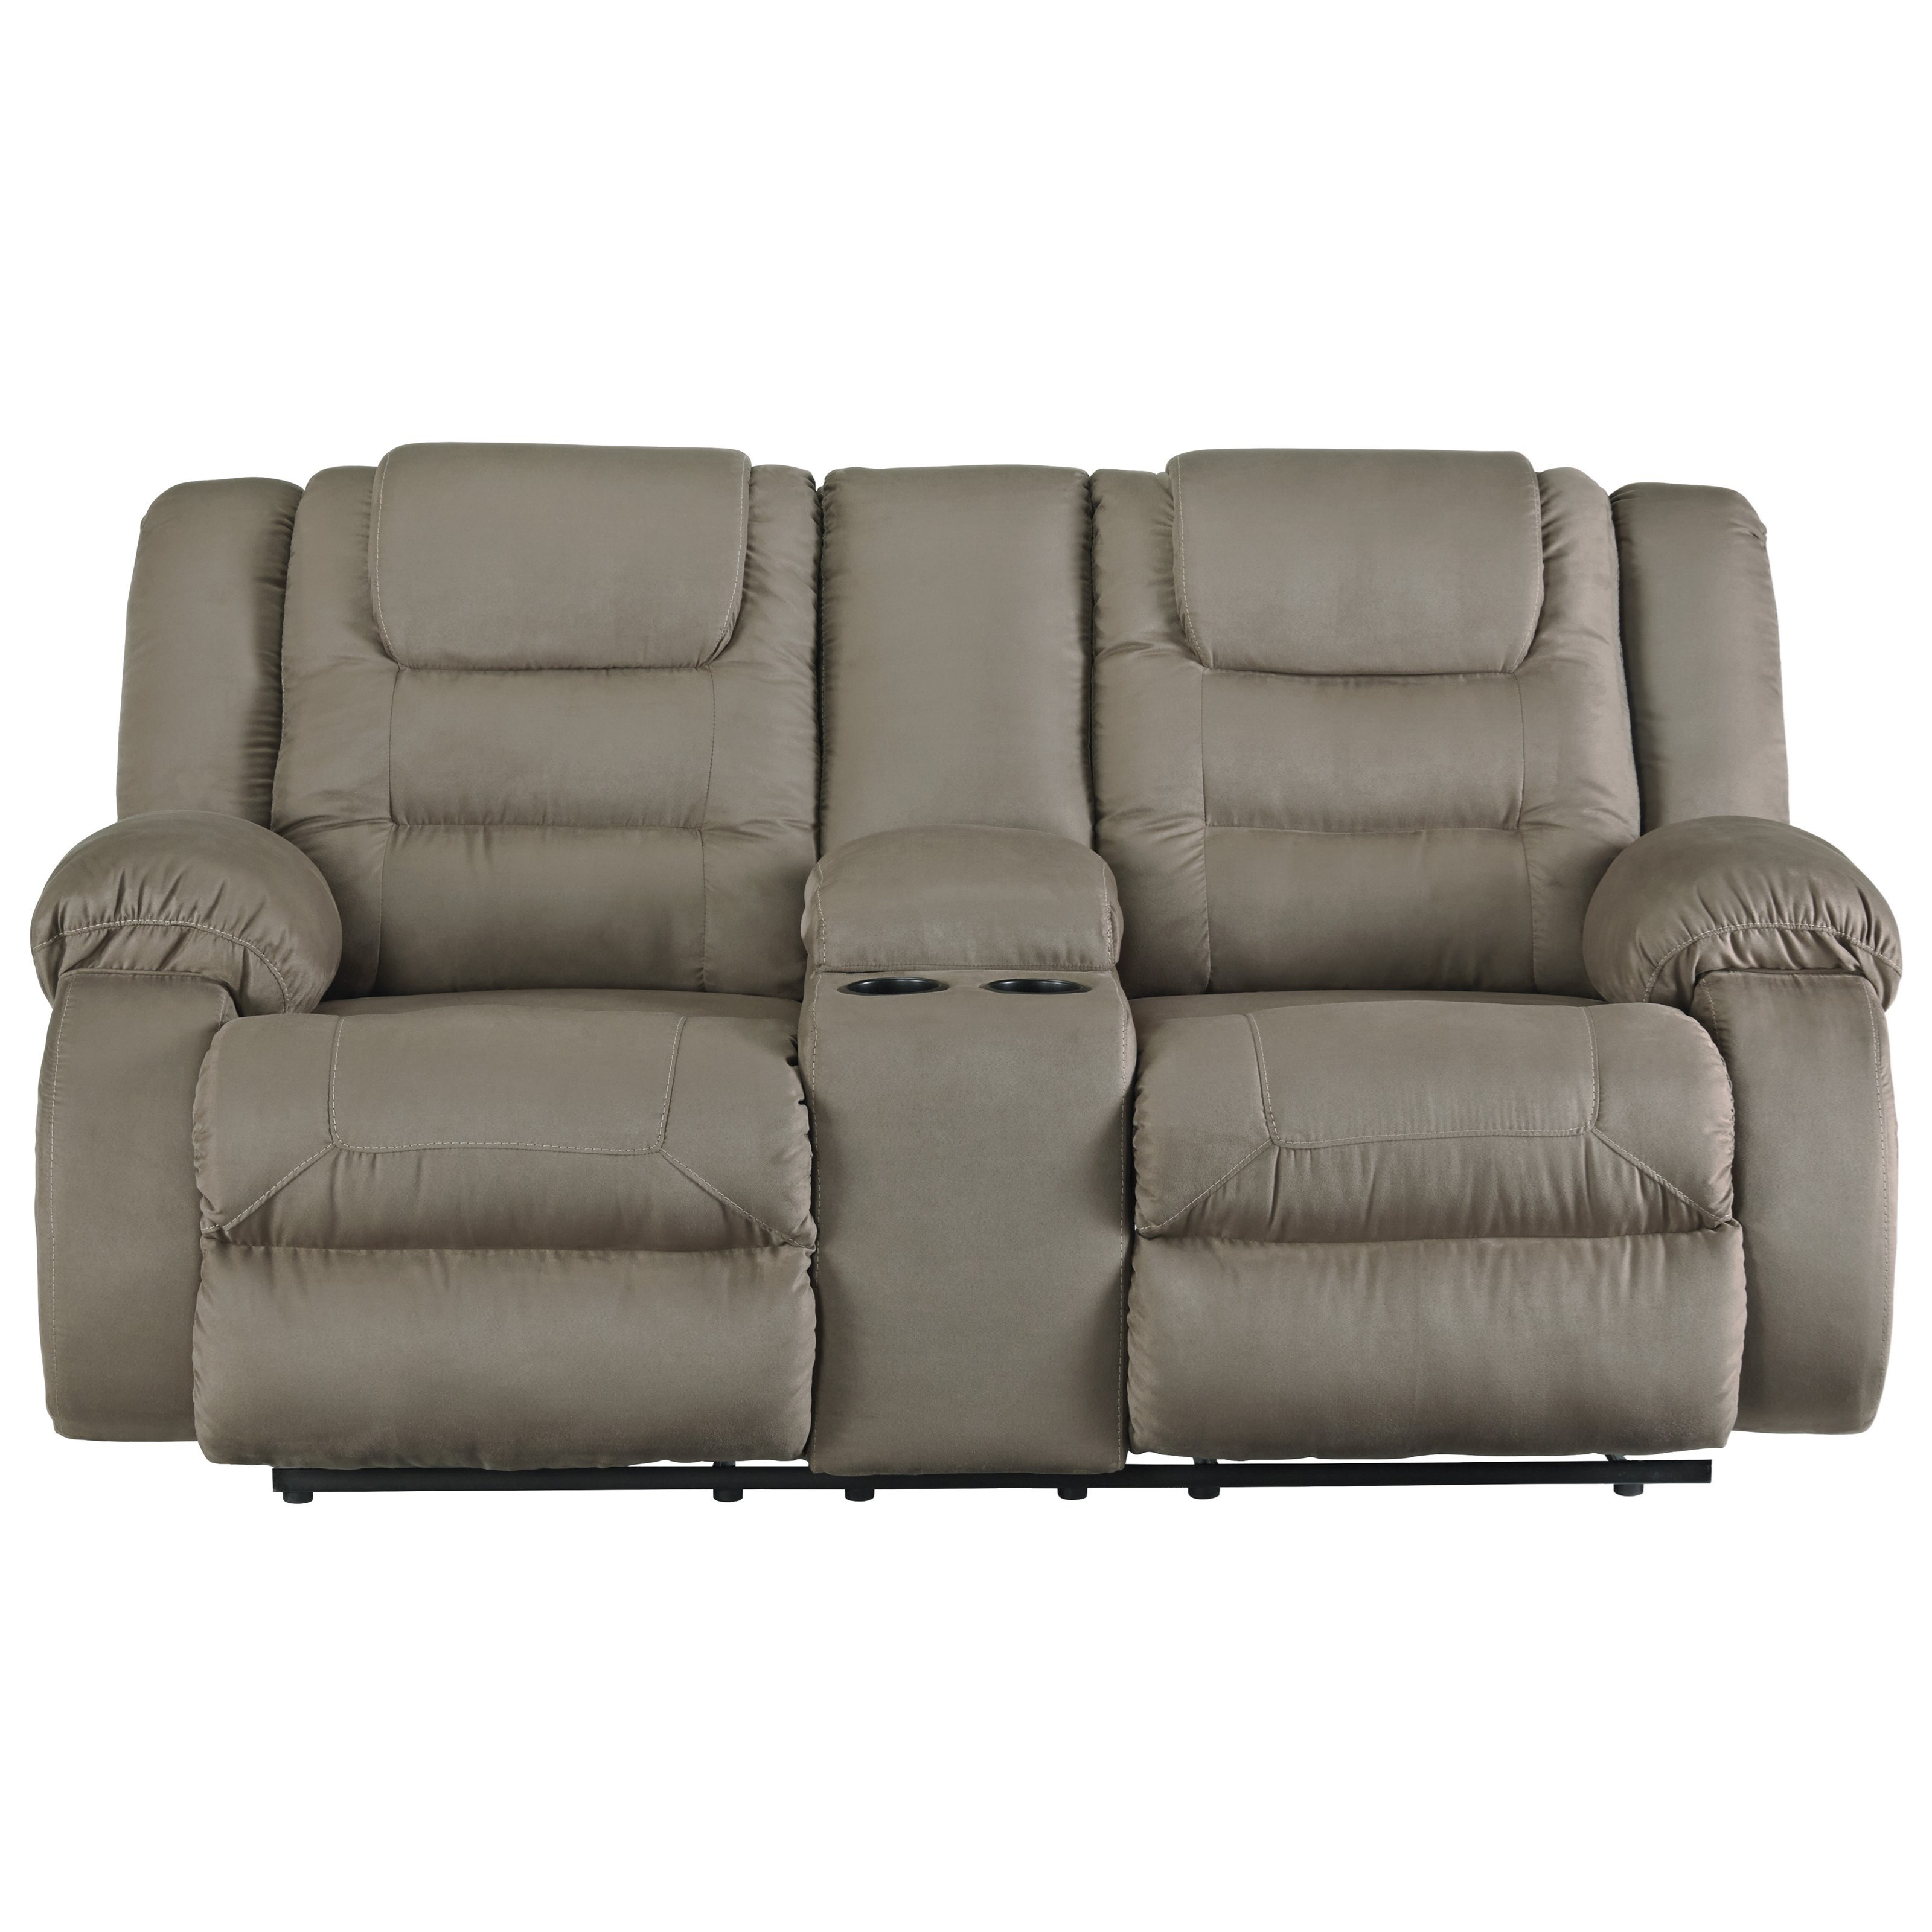 McCade Double Reclining Loveseat with Console by Signature Design by Ashley at Beds N Stuff